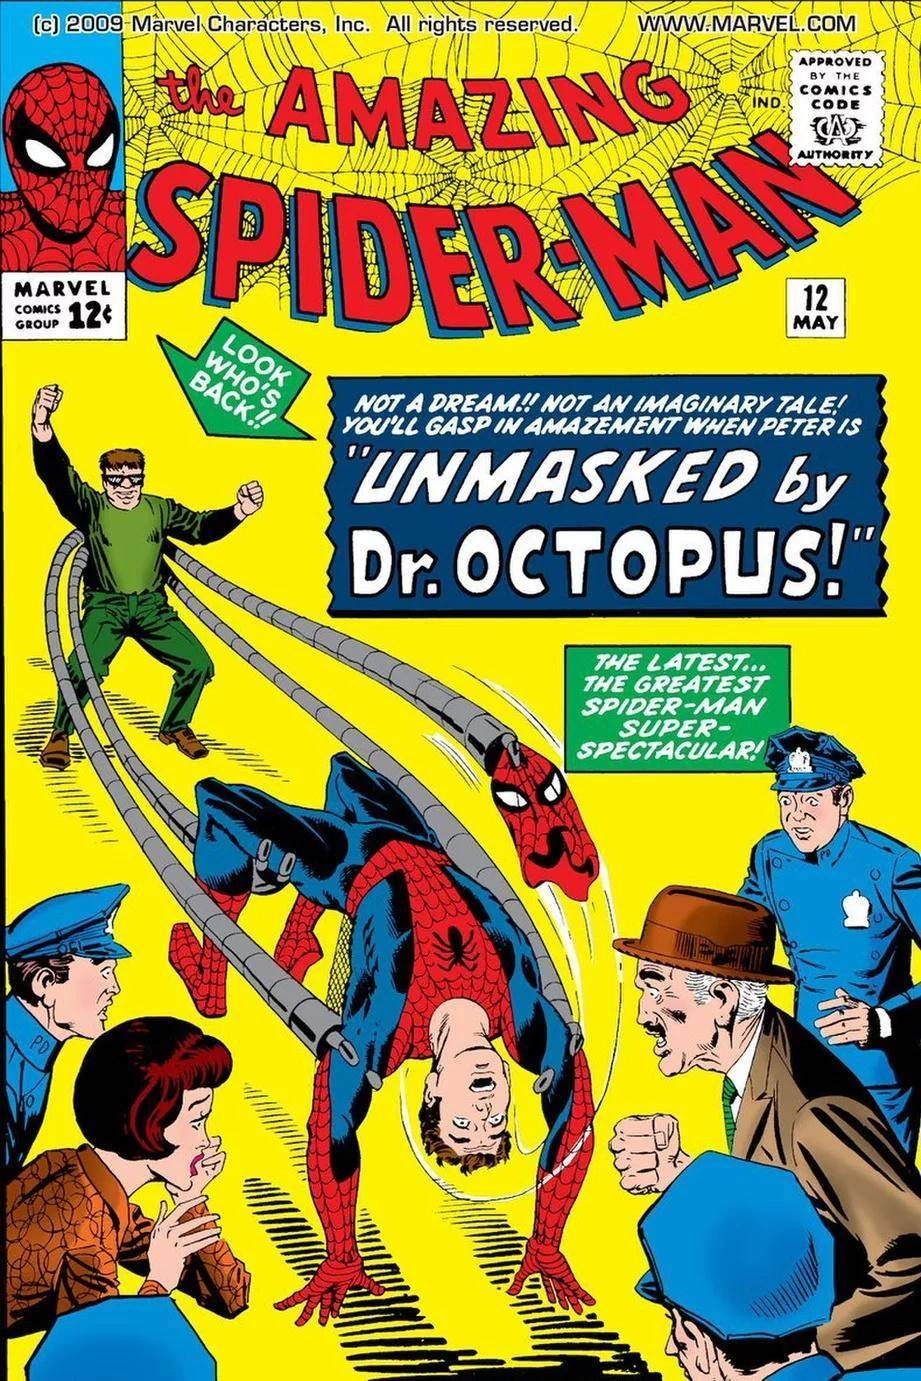 Amazing Spider-Man #12 (1964)